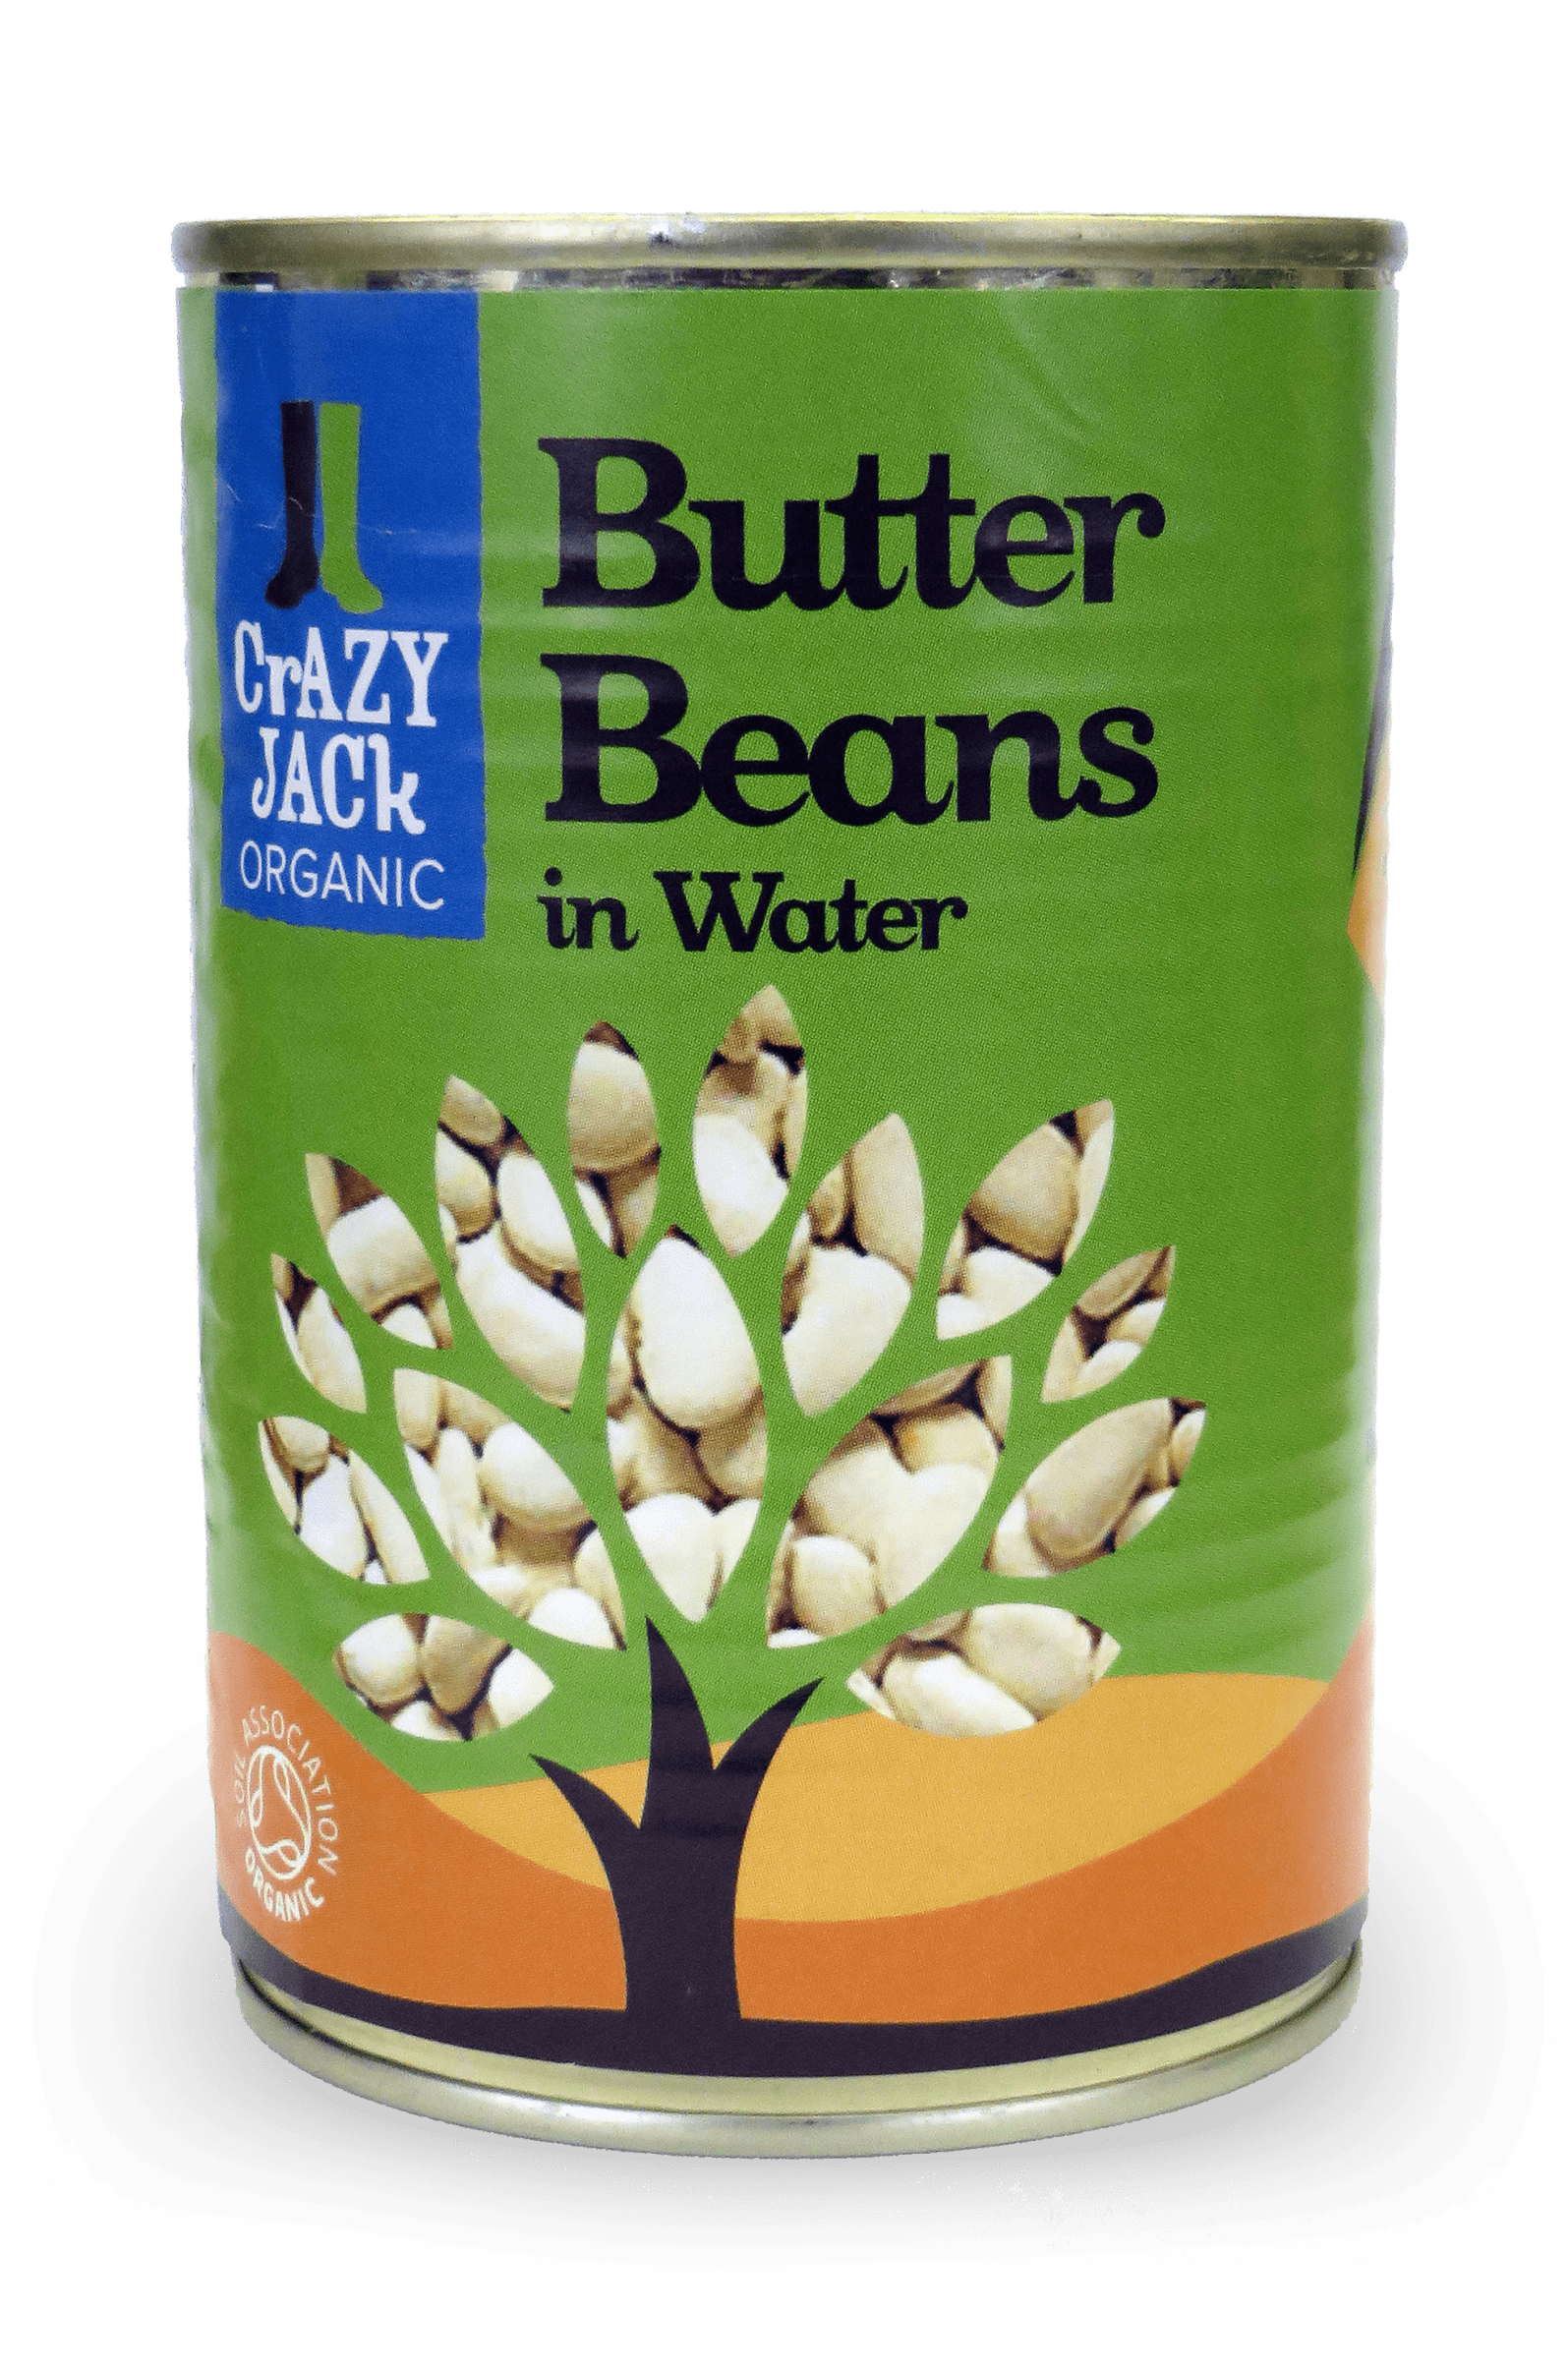 A tin of organic butter beans in water